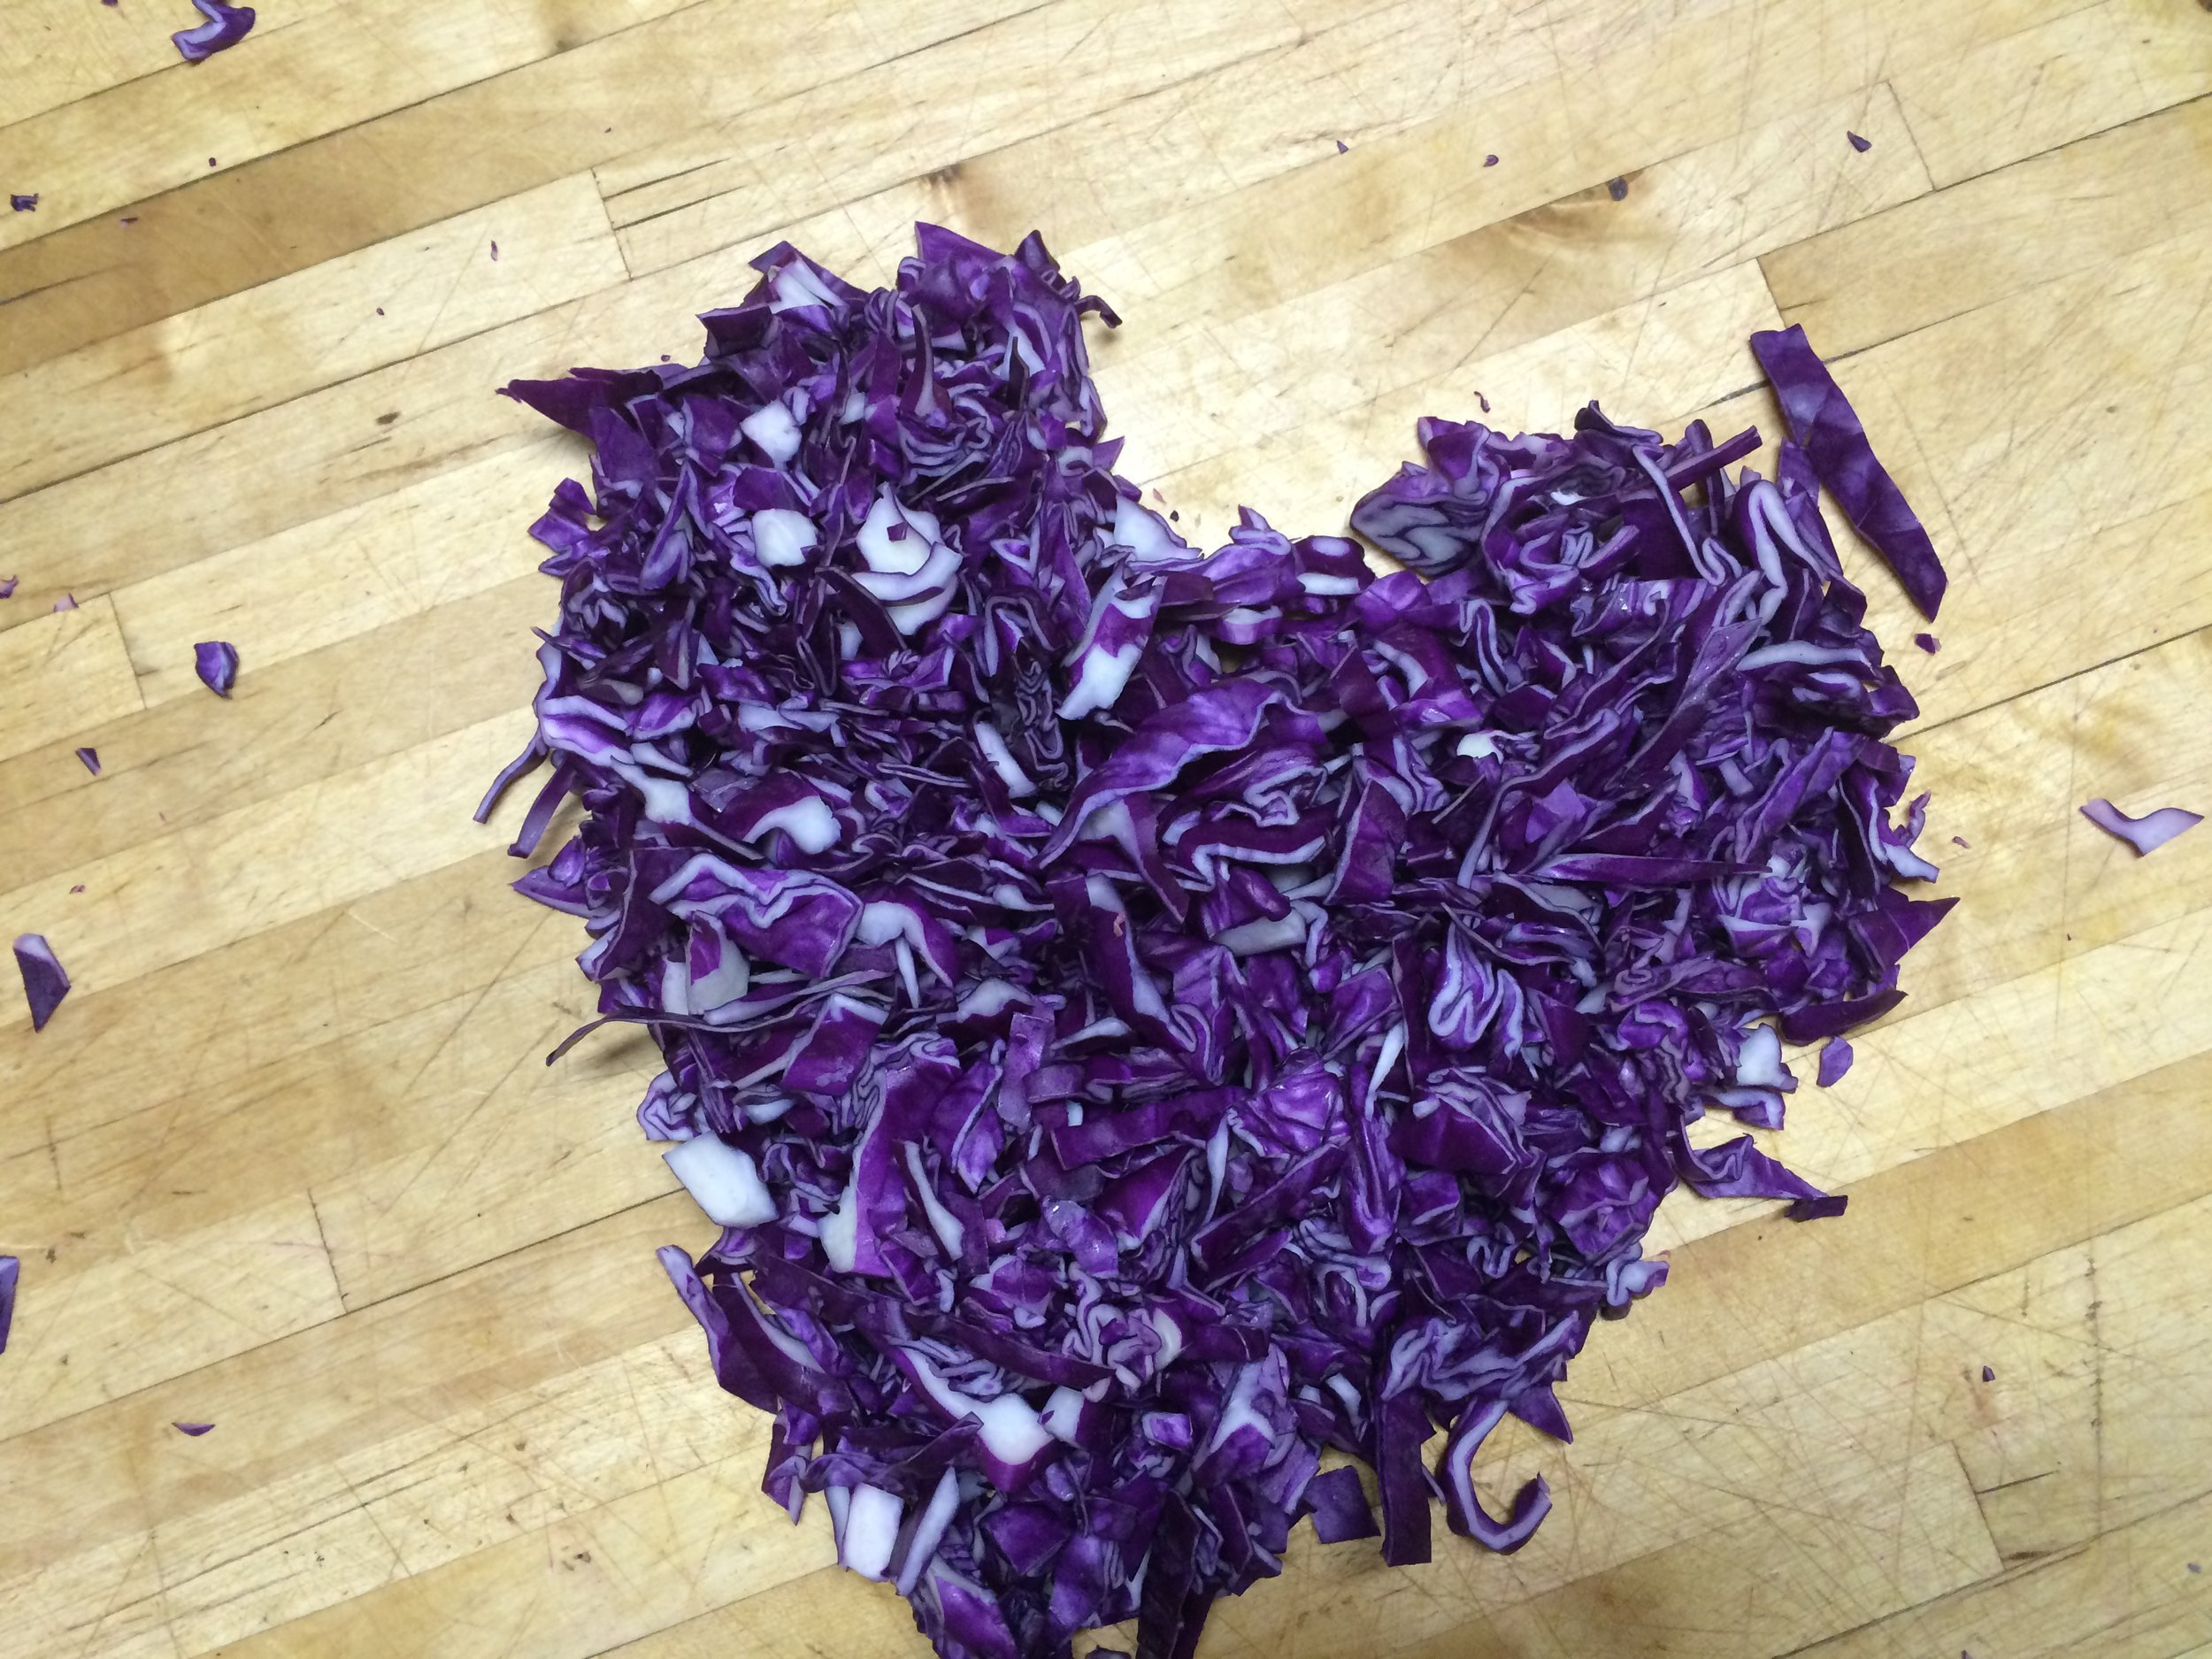 Cabbage lasts forever. Texture, color, AND vitamins. Win win win!